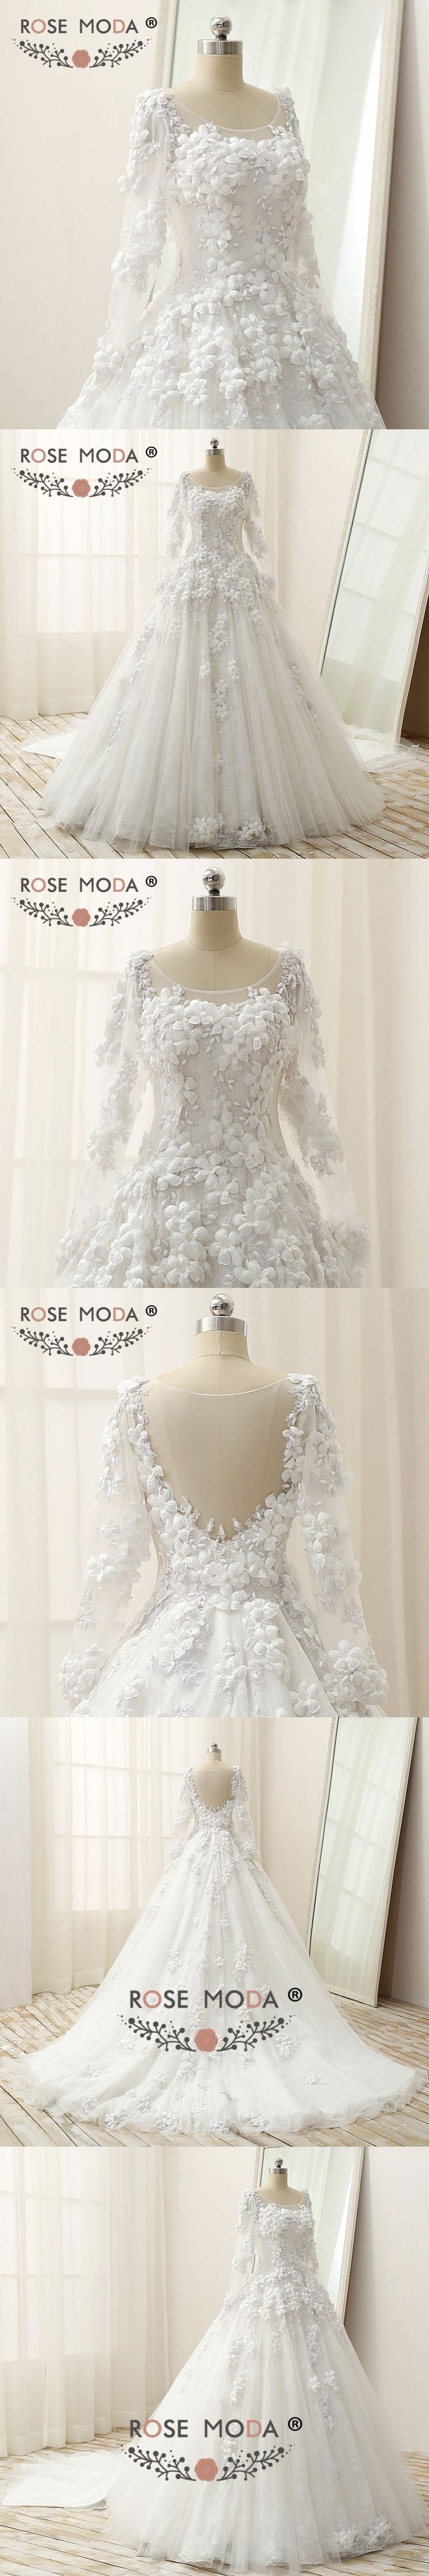 Rose Moda Luxury Long Sleeves Ball Gown with Royal Train Vintage Lace Muslim Wedding Dress 1M Train 3D Flowers Real Photos